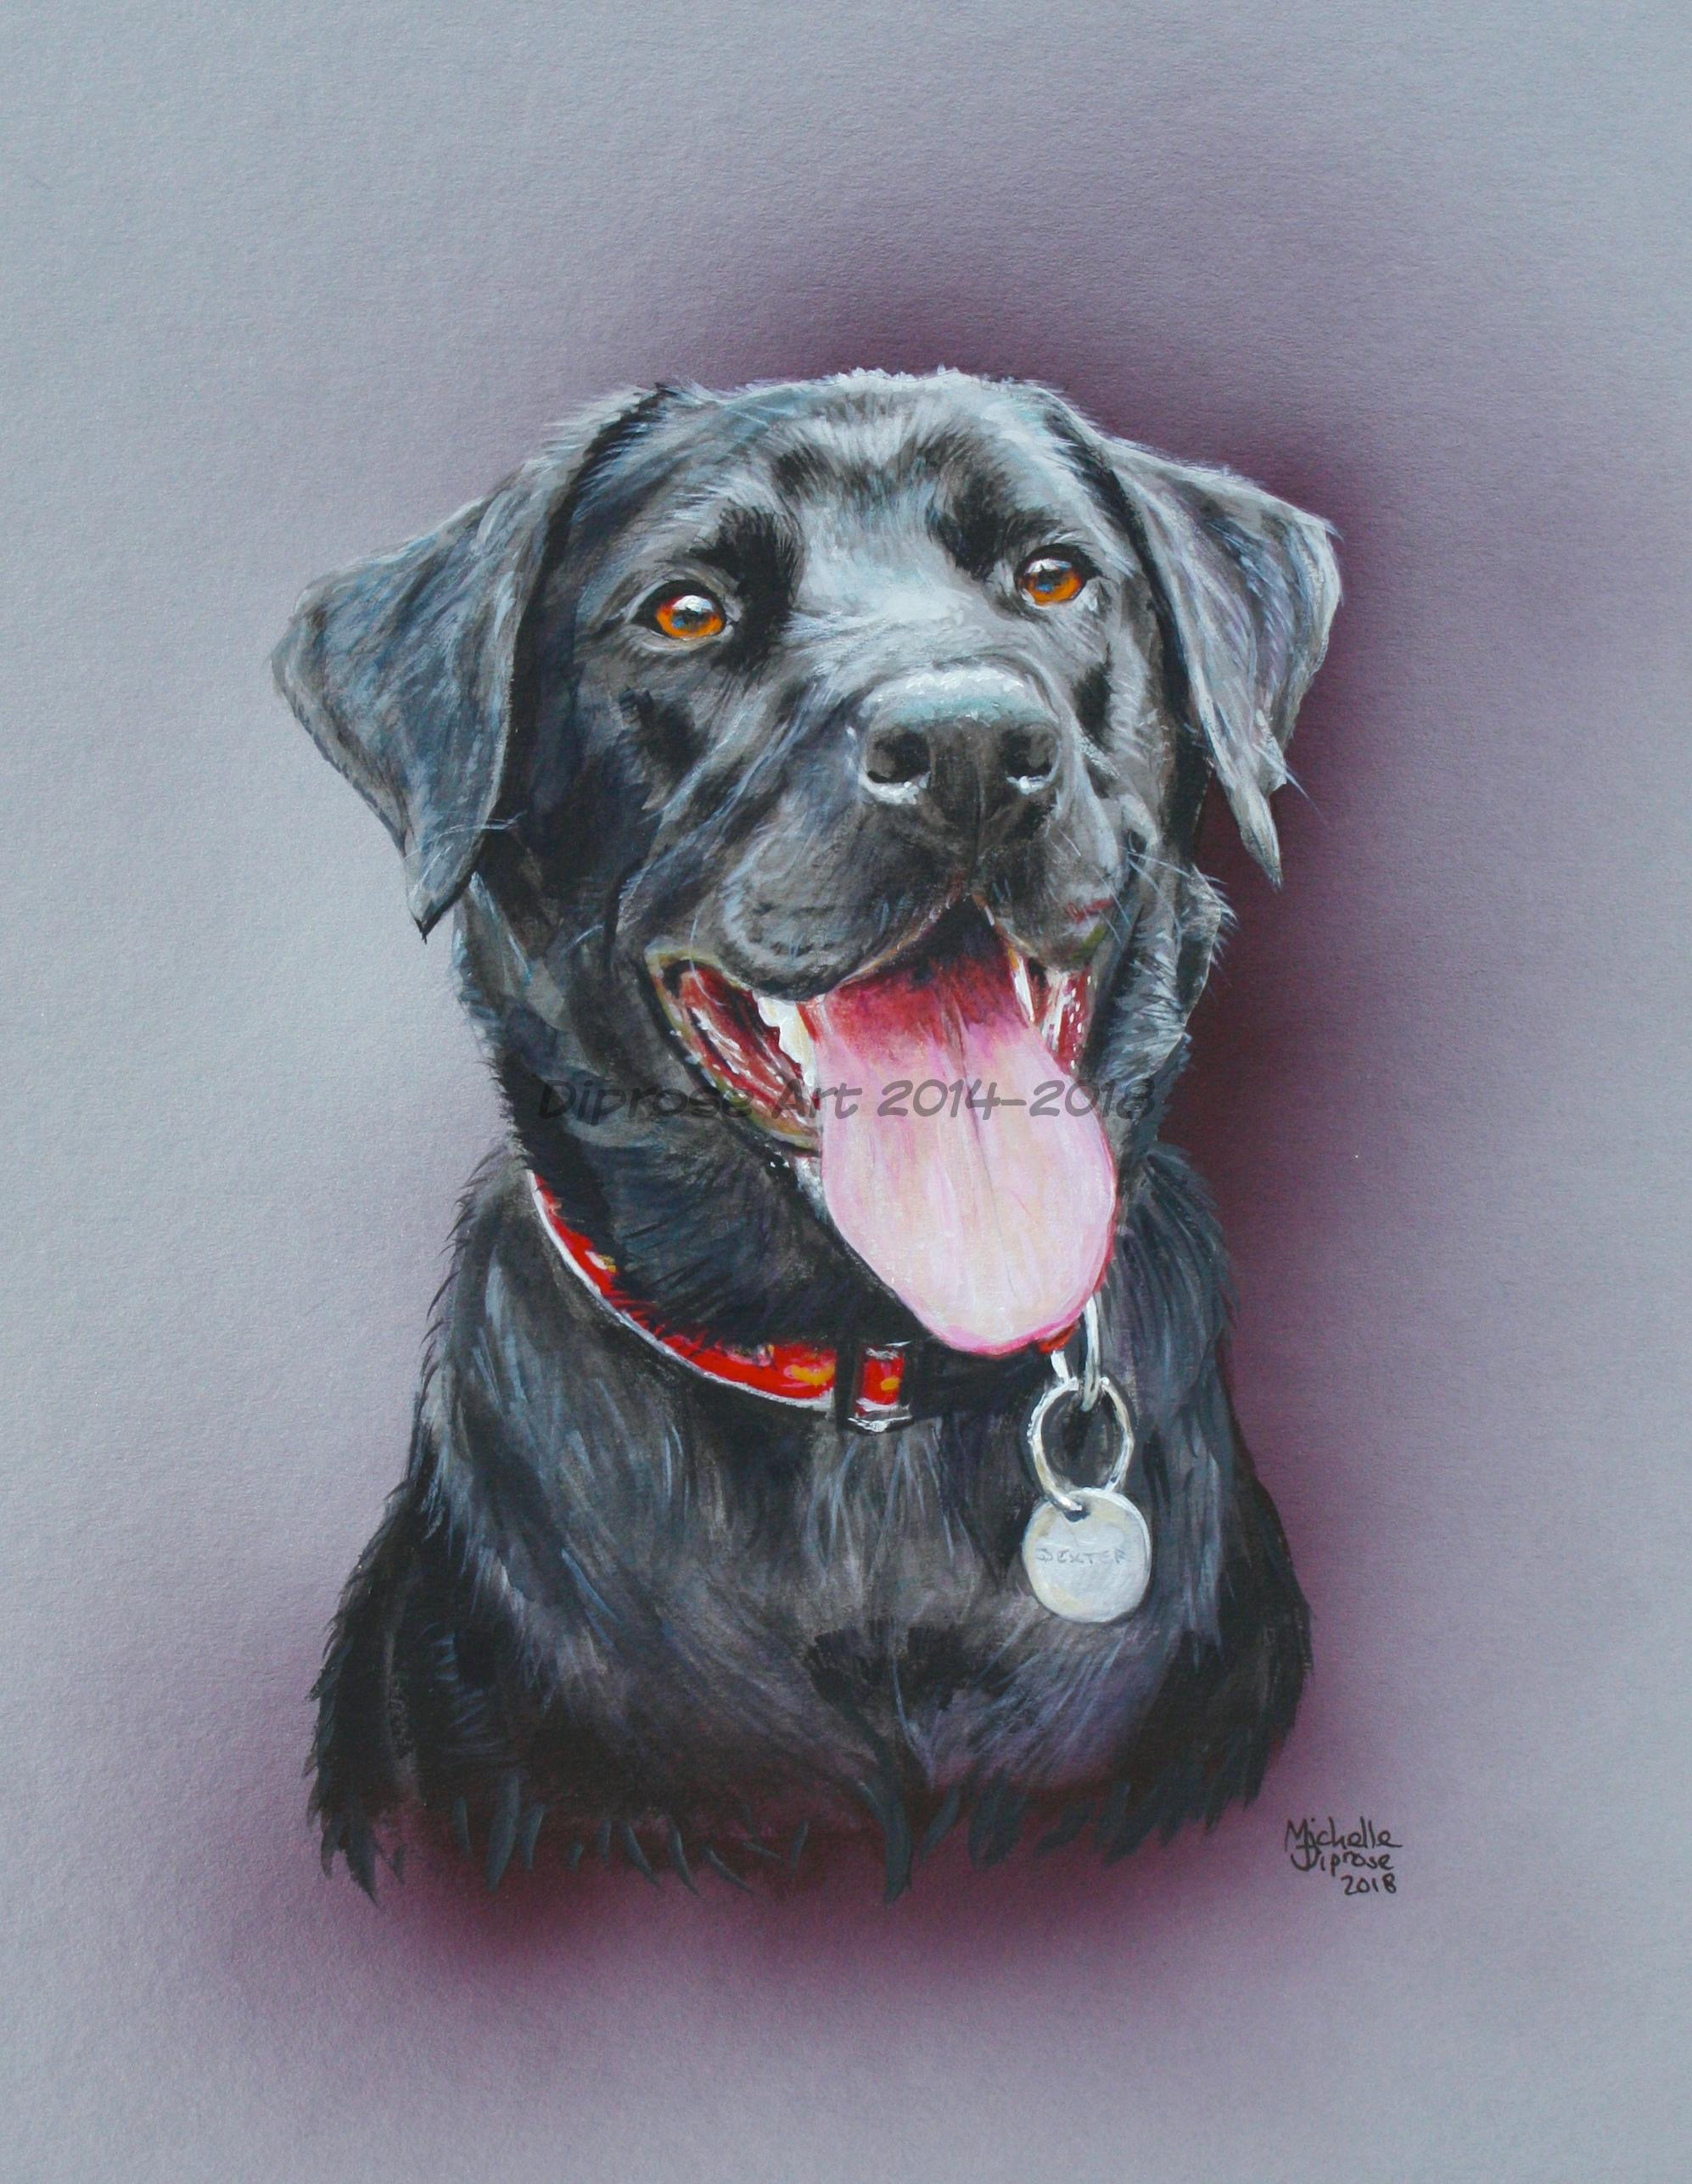 bd023373a72c Approx A4 acrylics pet portrait - this is Dexter and he really is a joyful  chap